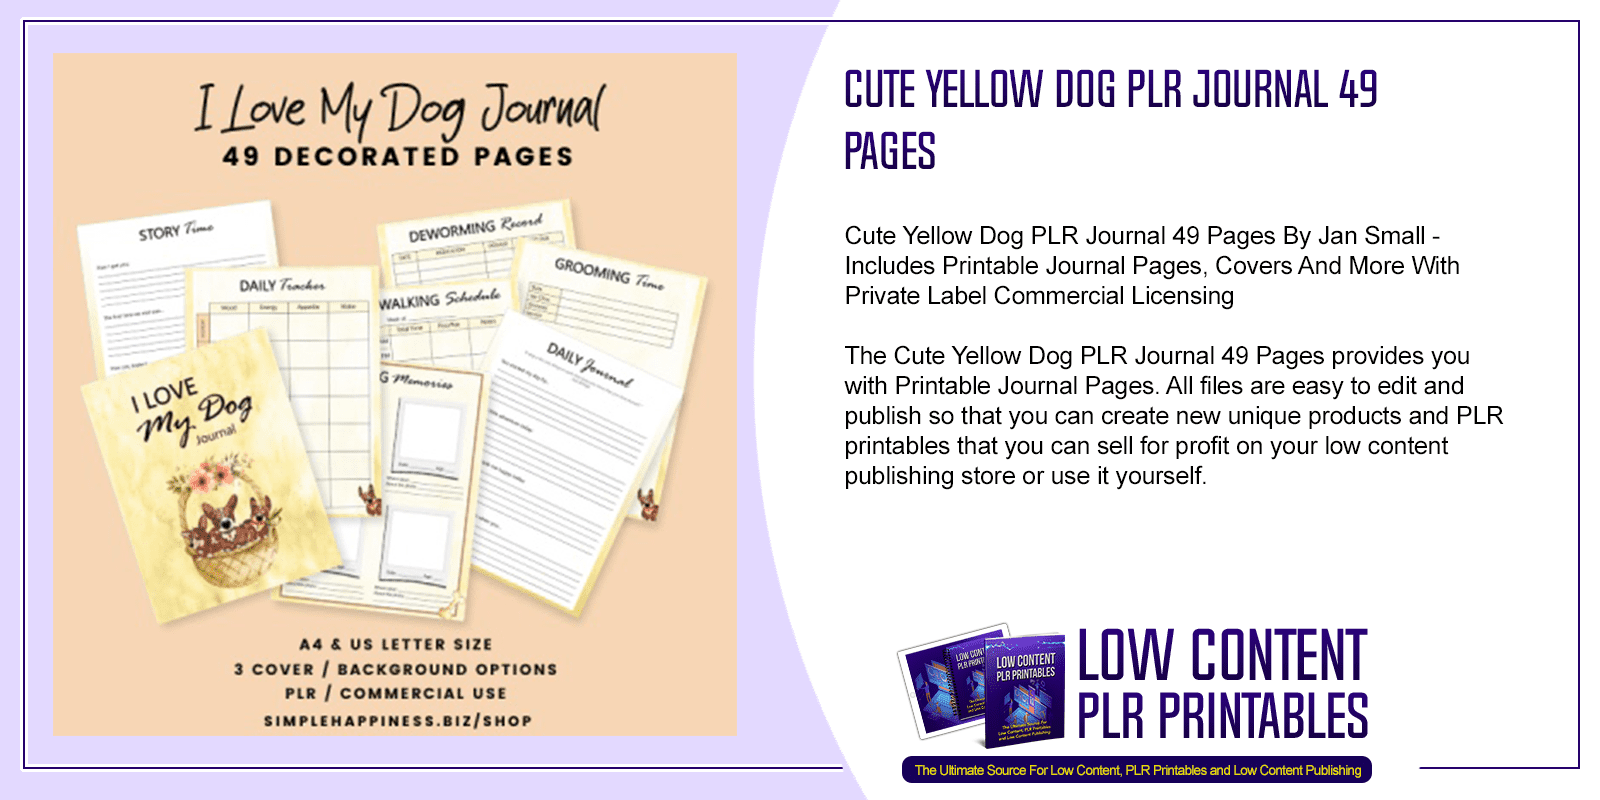 Cute Yellow Dog PLR Journal 49 Pages